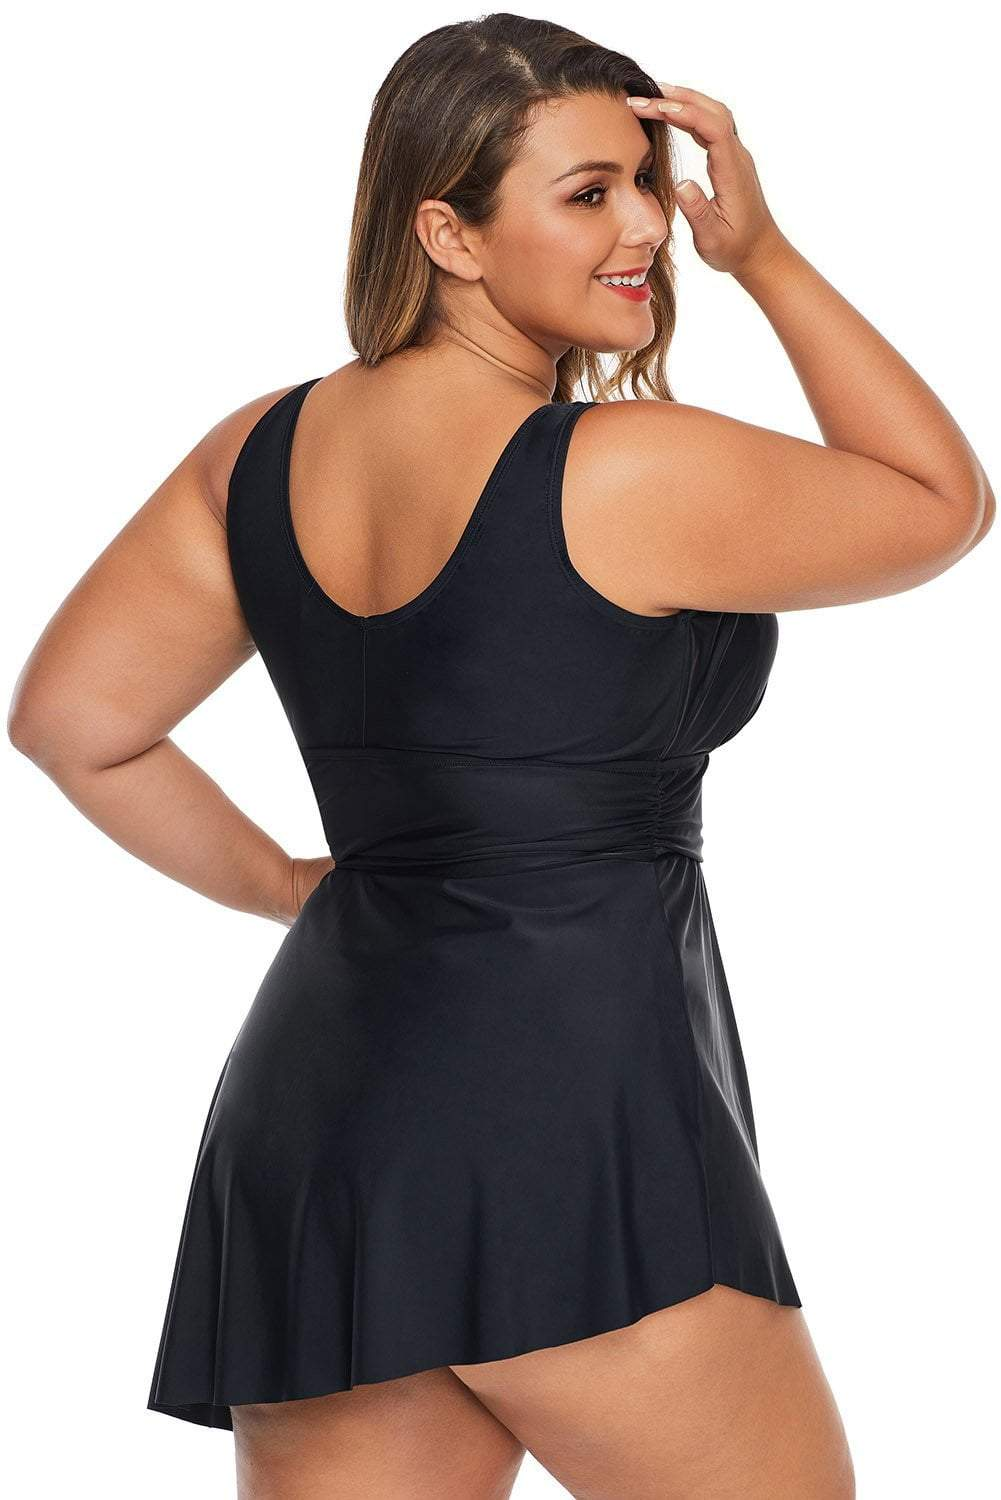 plus size One Piece Keira Swim Dress